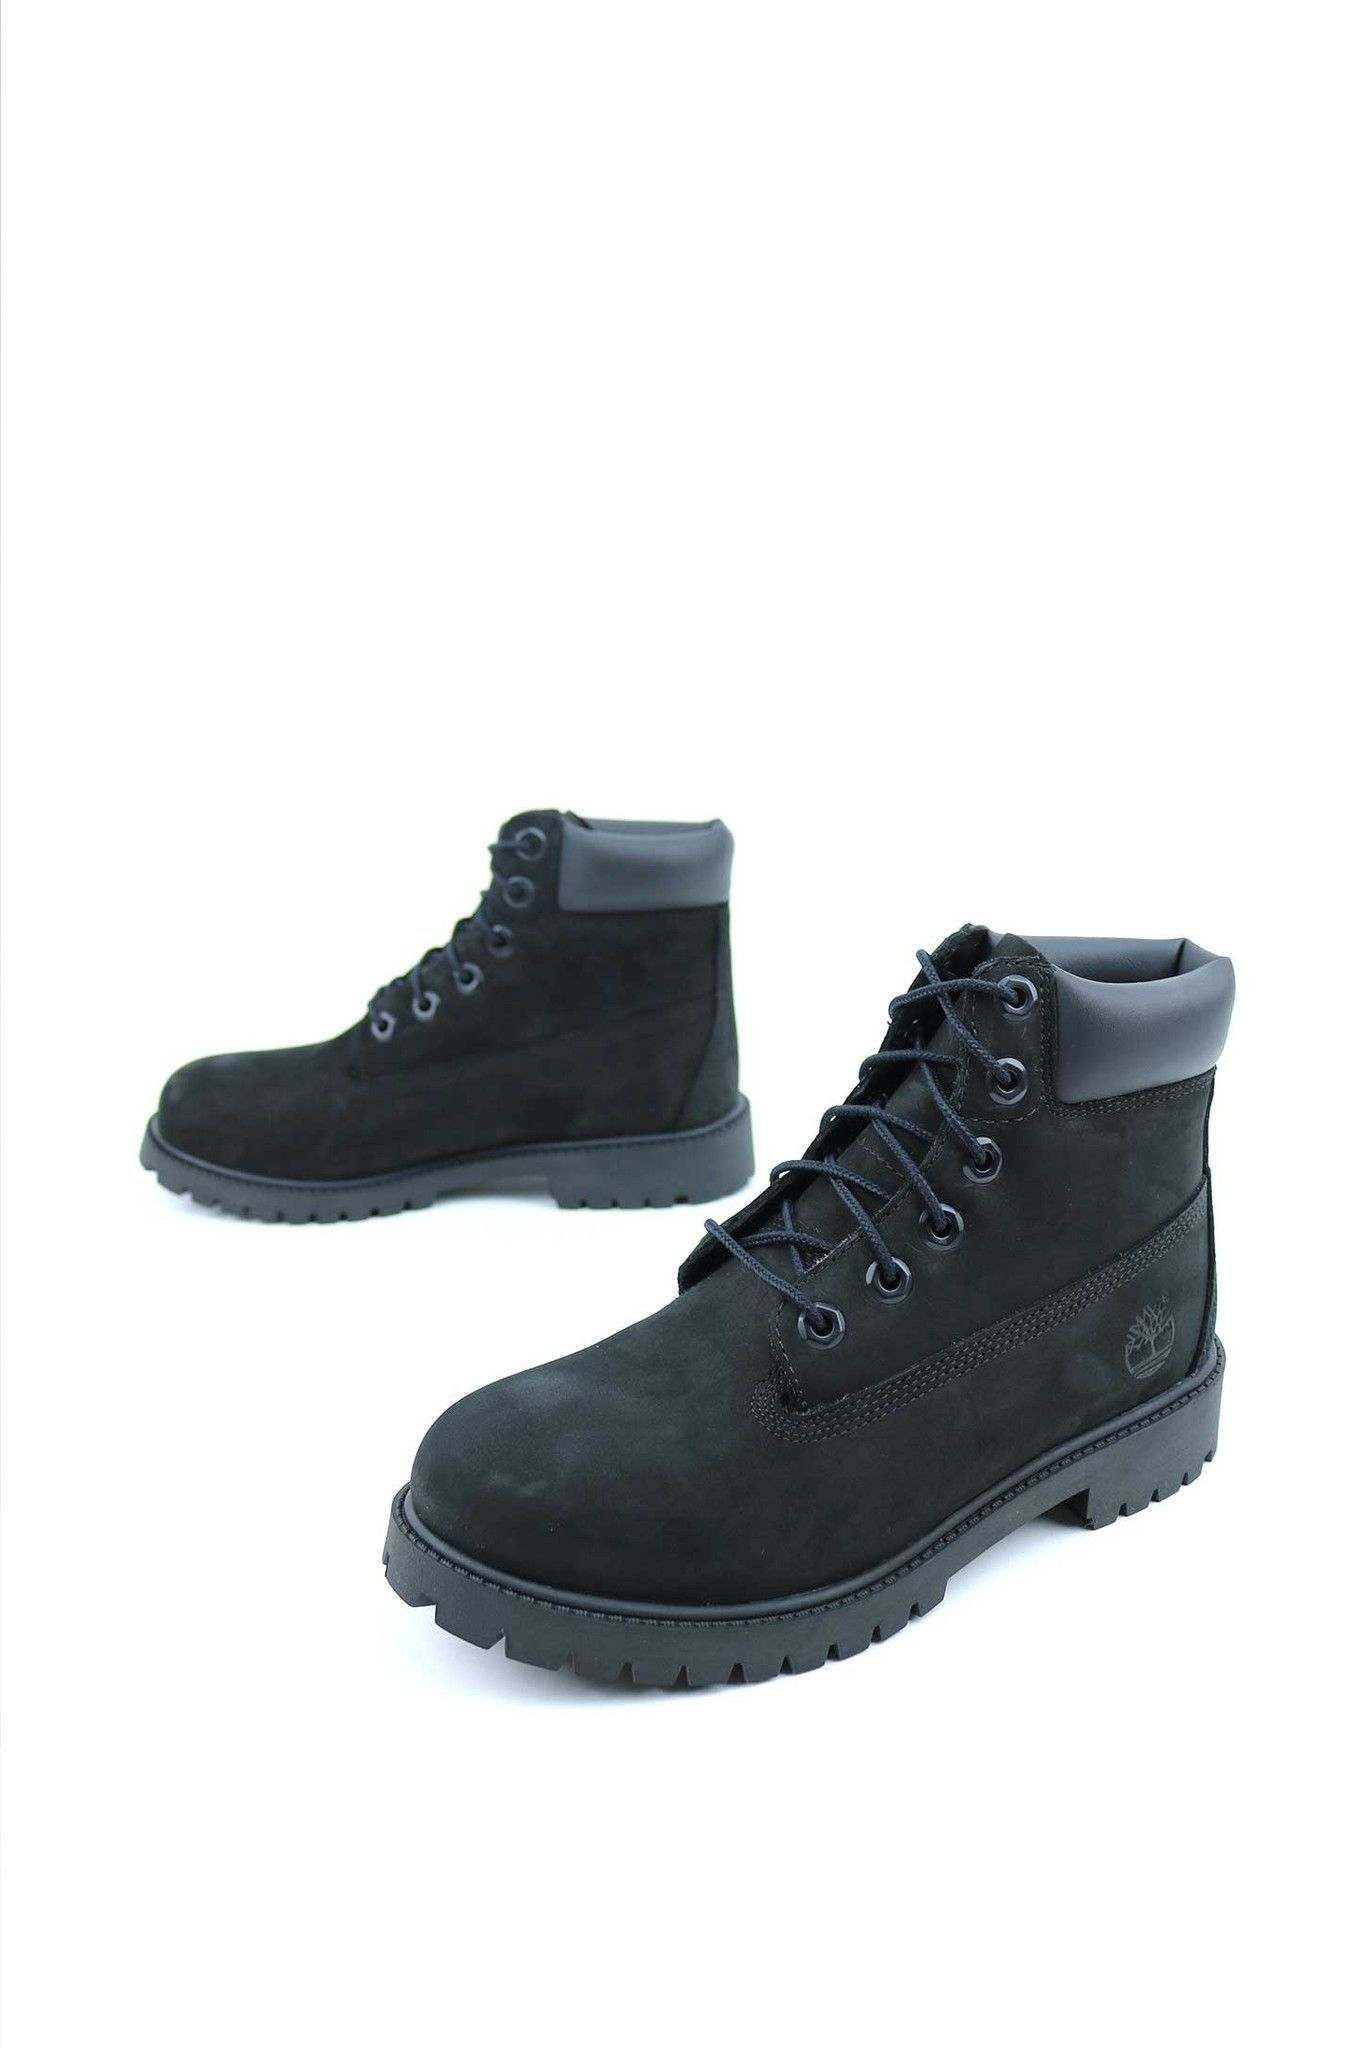 9a7feb5fc63a2 Junior 6-Inch Premium Waterproof Boots Timberland Kids, Timberland Boots,  Timberlands, Waterproof